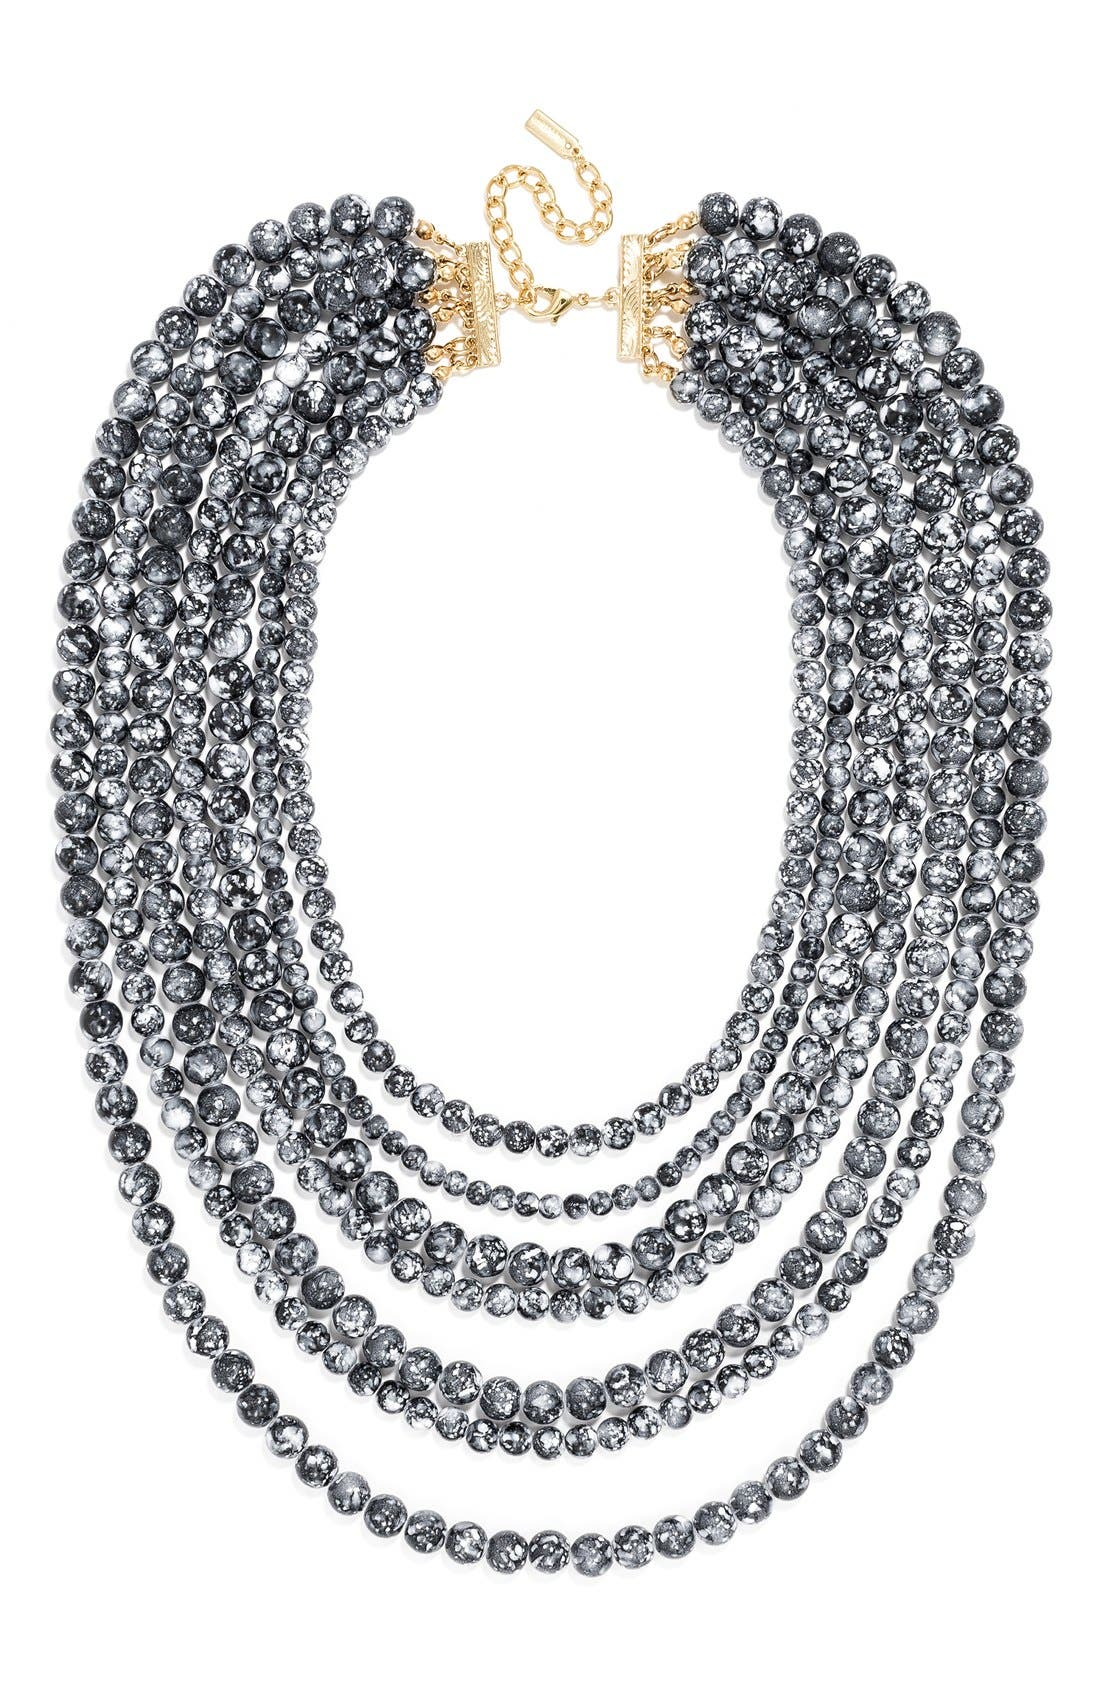 'Bold' Multistrand Beaded Statement Necklace,                         Main,                         color, Black